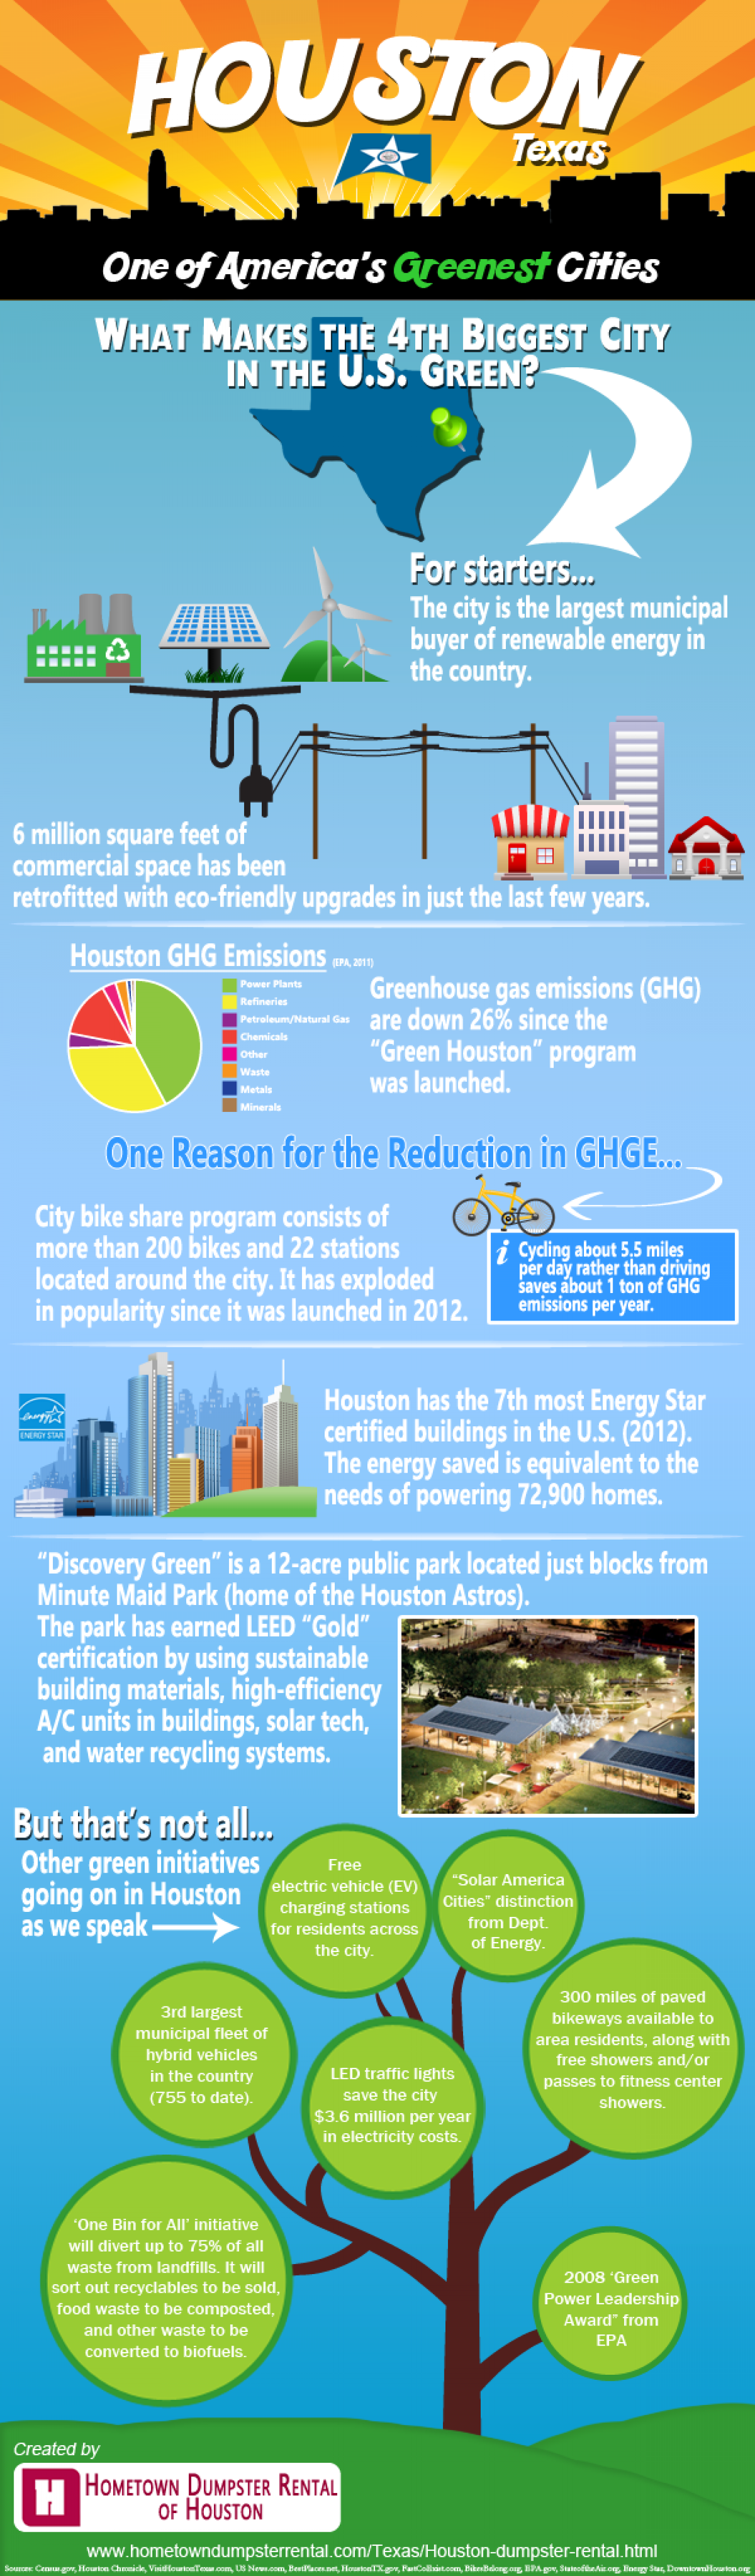 Houston, TX is One of America's Greenest Cities Infographic